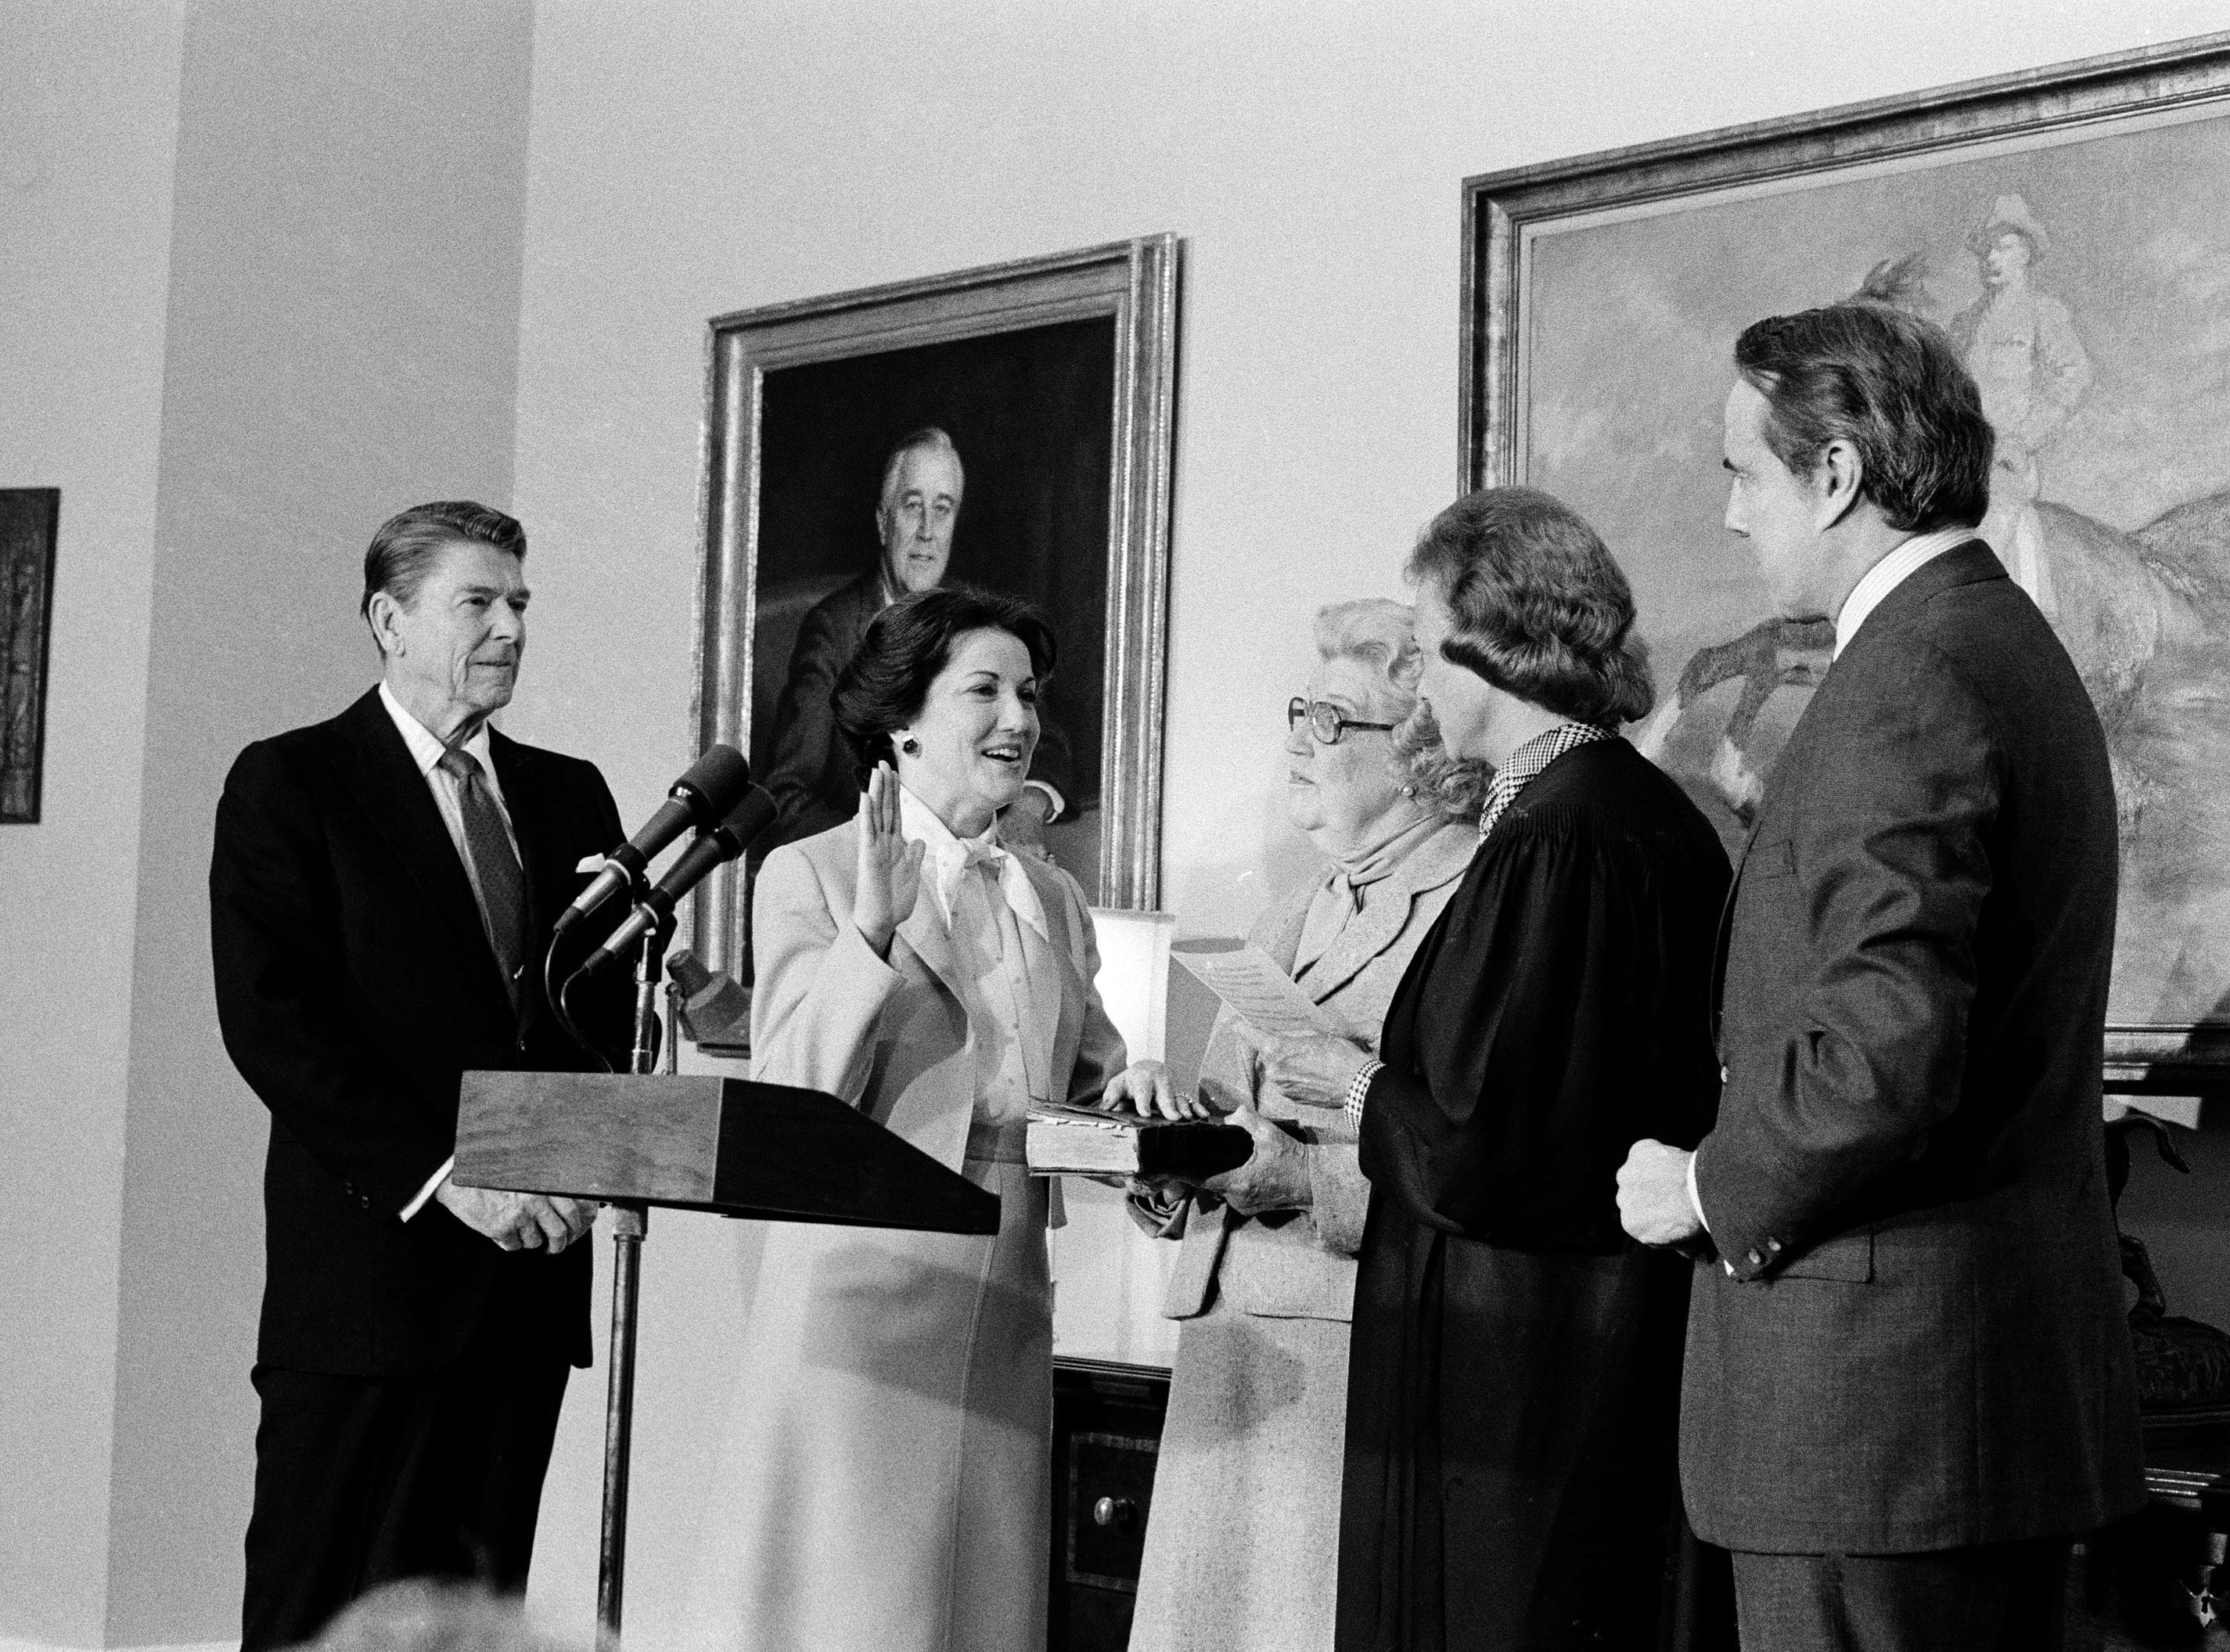 Supreme Court Justice Sandra Day O'Connor swears in Elizabeth Dole as the new Transportation Secretary, as President Reagan looks on at left, in an East Room ceremony at the White House, Feb. 7, 1983.  At far right is the husband of the secretary, Sen. Robert Dole, R-Kan., and at center is her mother, Mary Hanford.